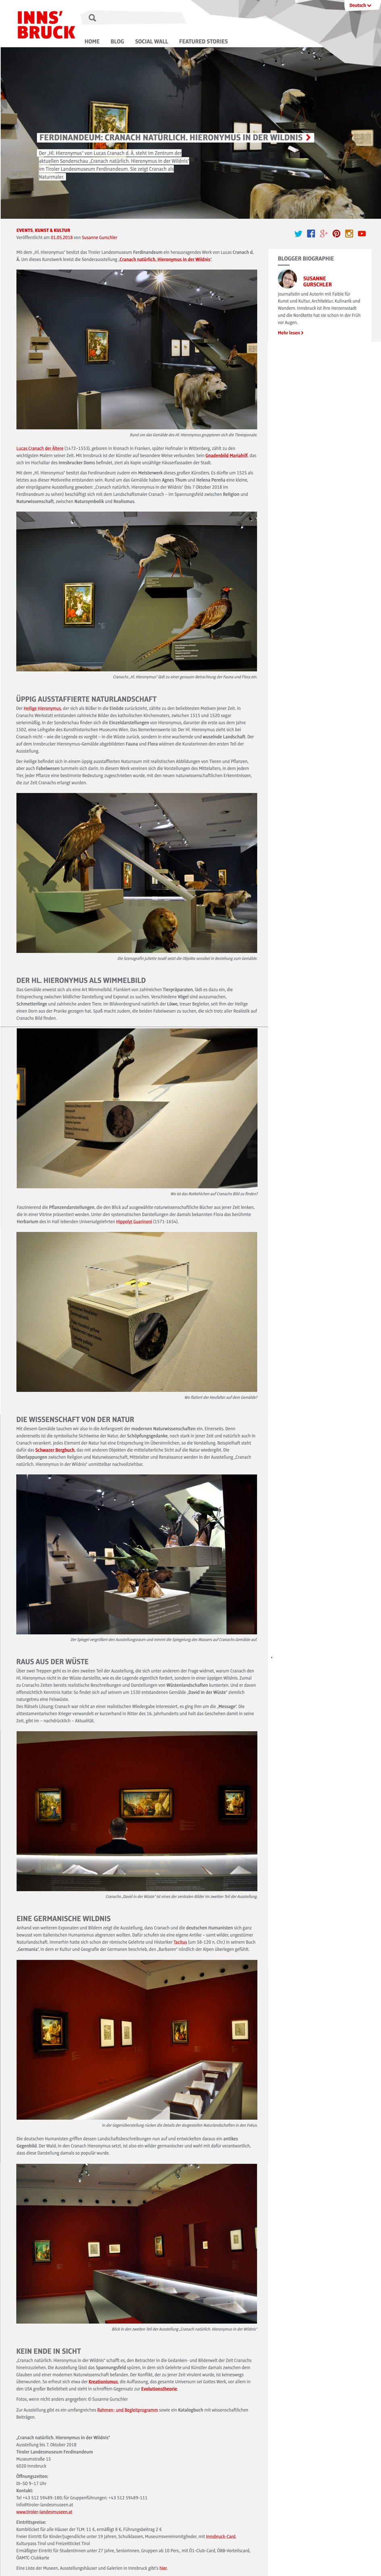 juliette israel, scenography + curatorial concepts